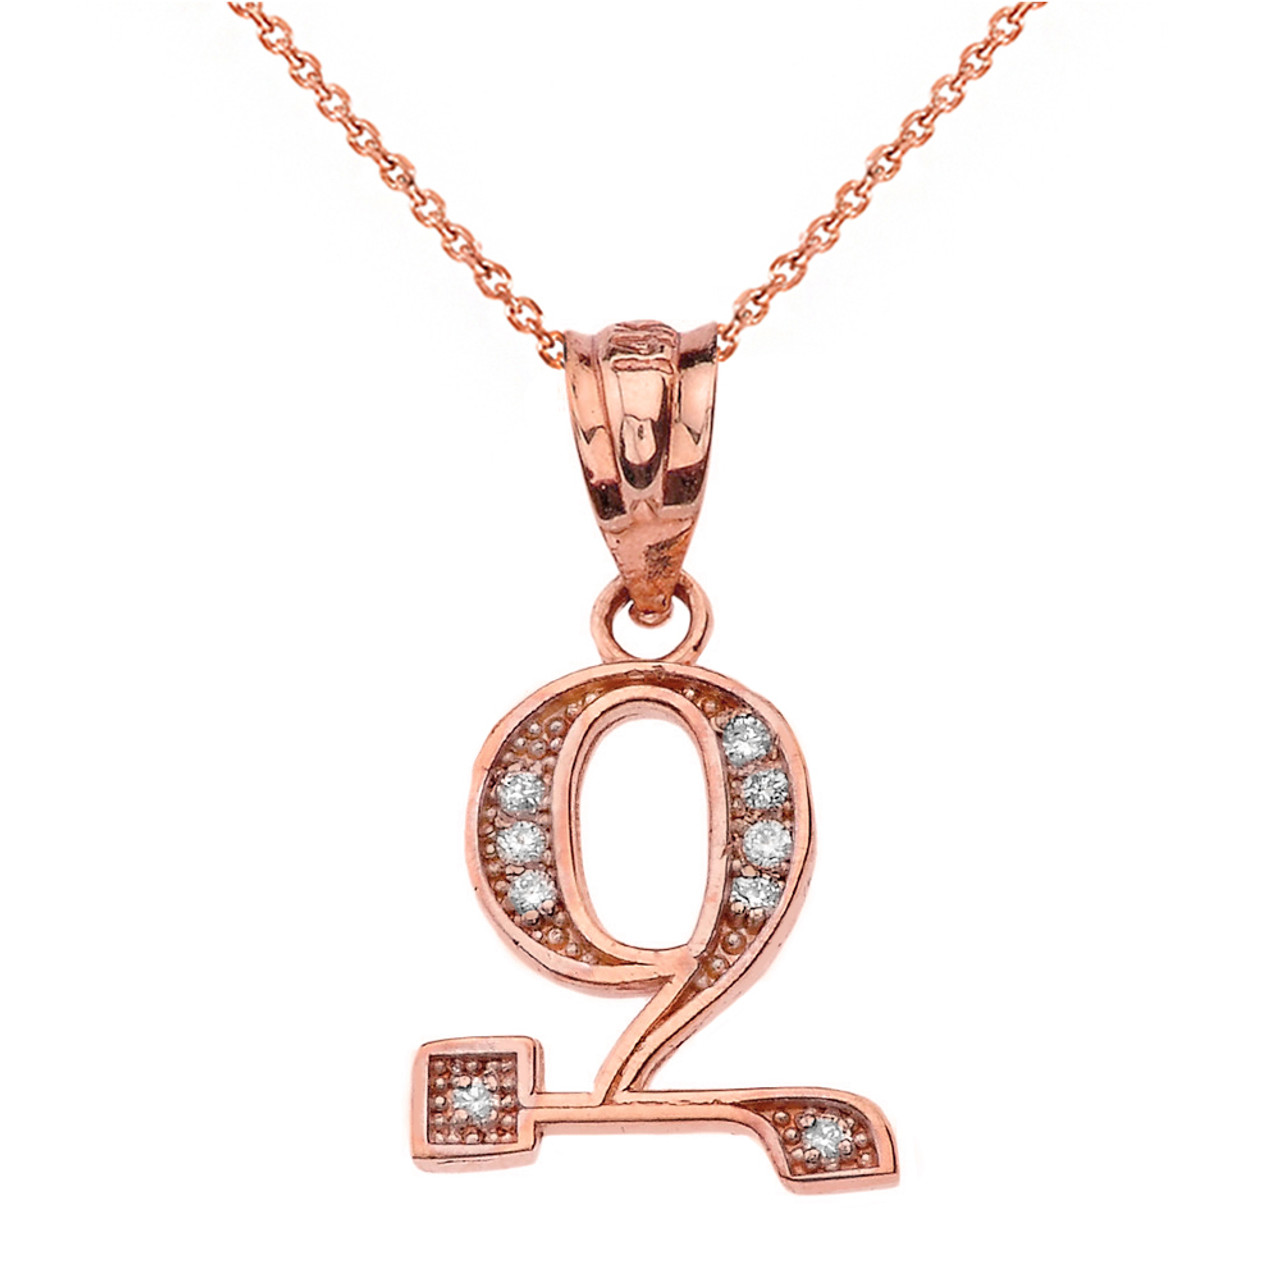 necklace personalized charm heart and trendy alphabet for bright mini from letter pendant love jewelry initial top mujer monogram women collares charms fashionable chain item gift in necklaces fashion new